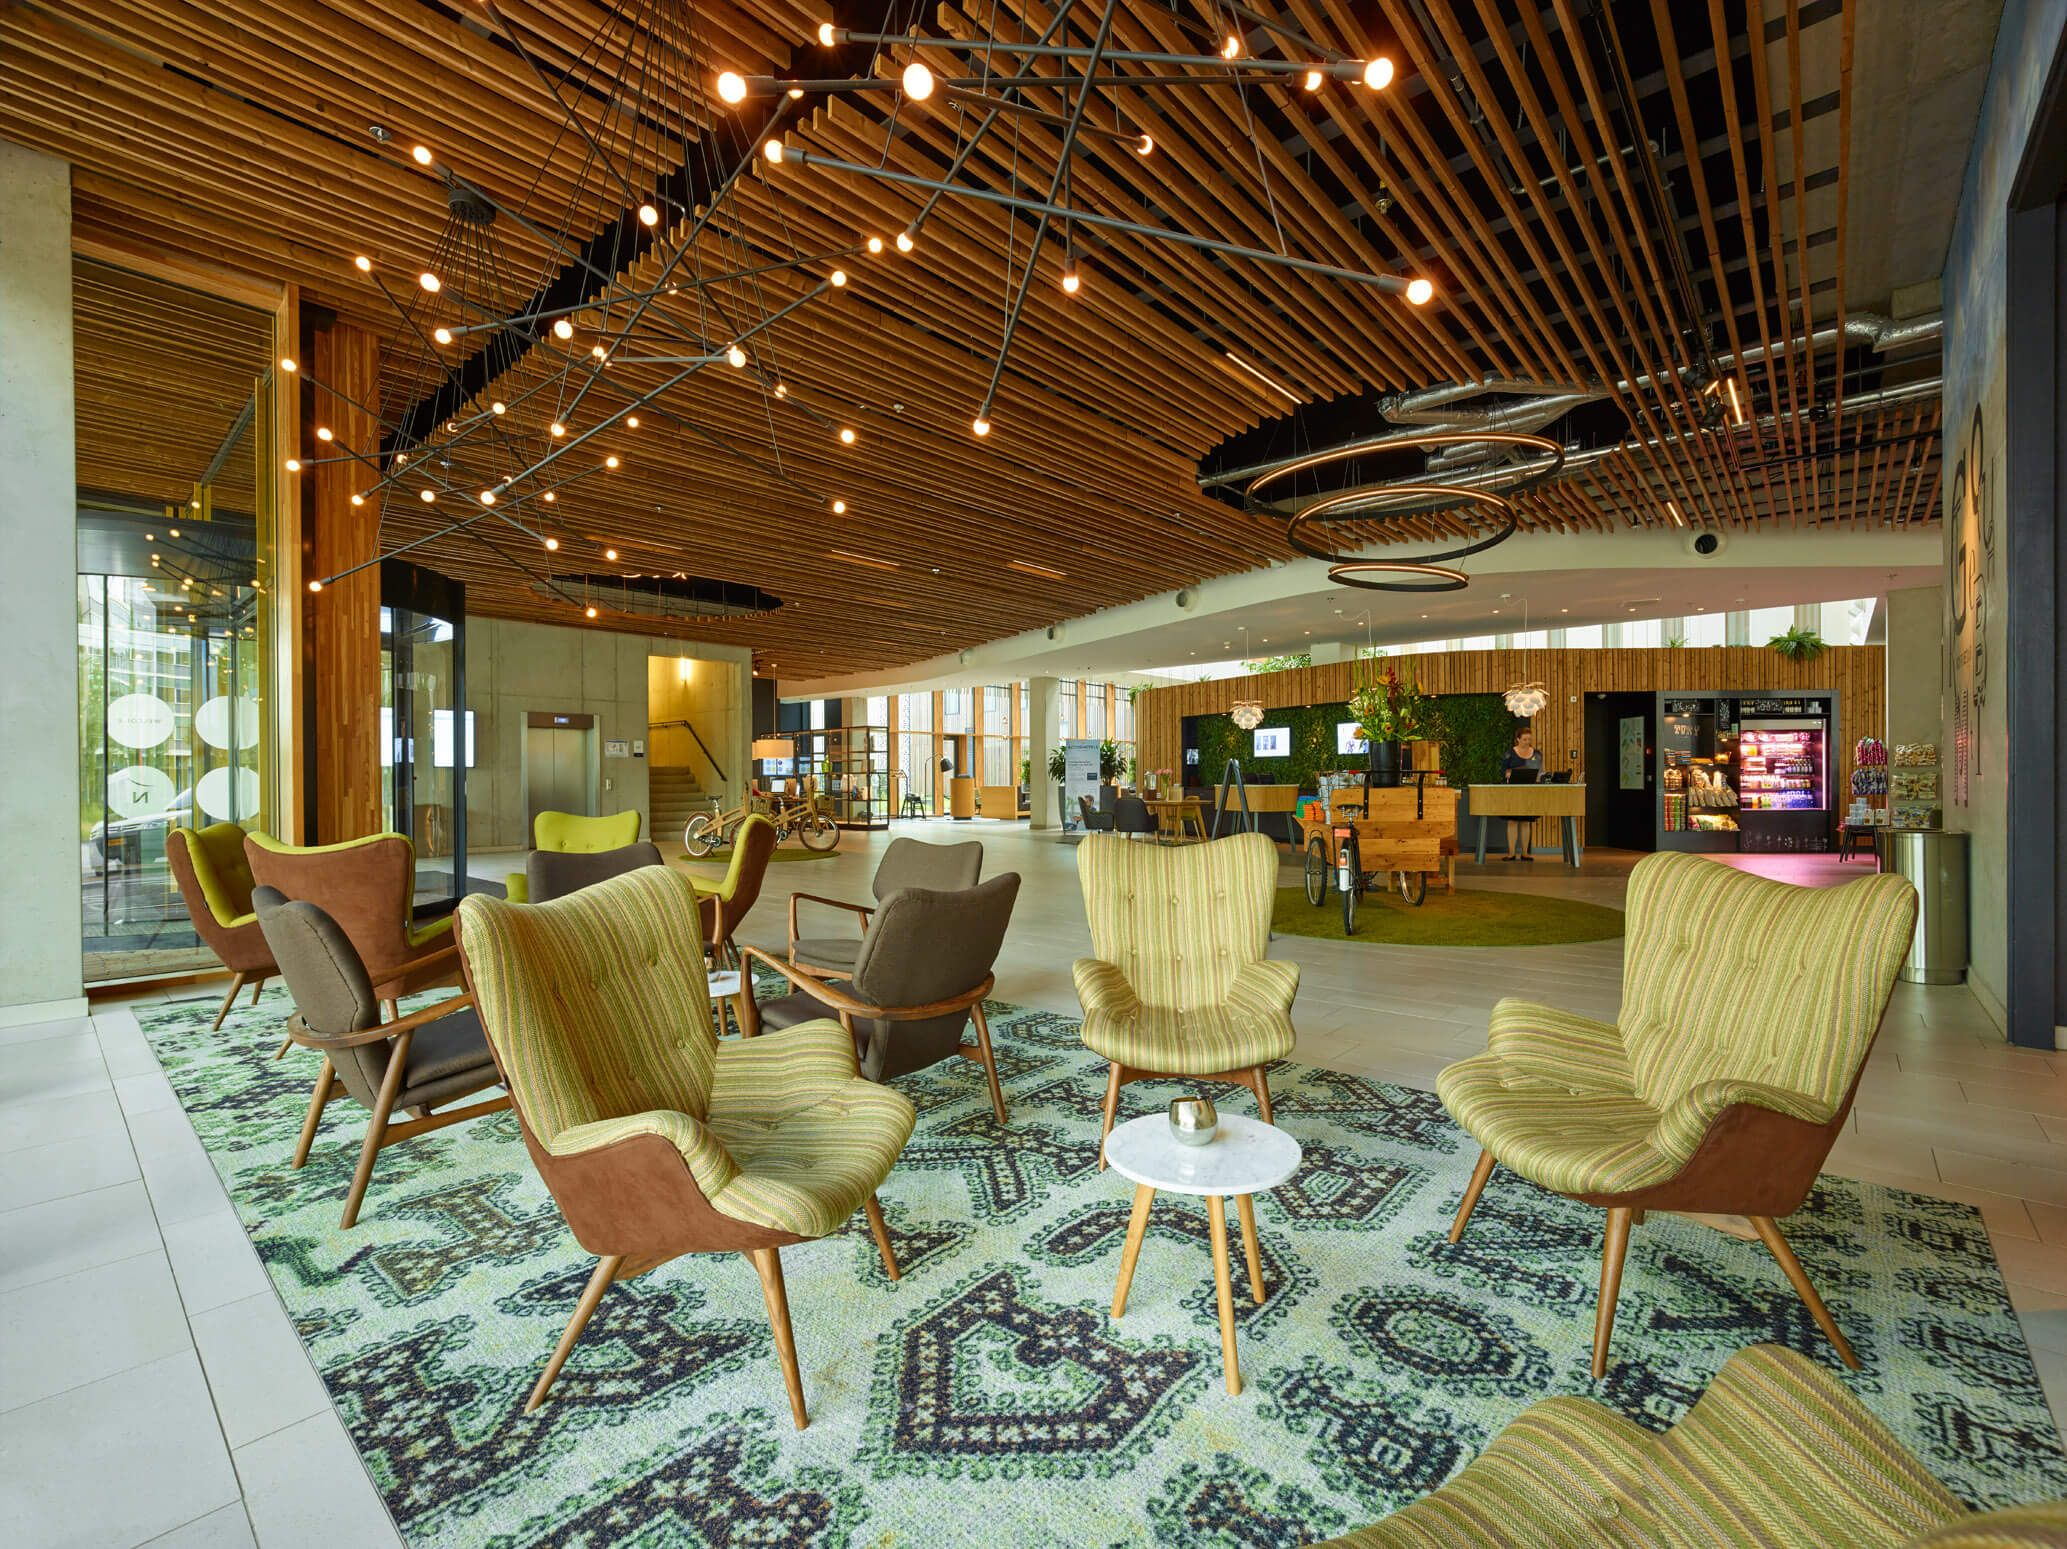 Hotel Novotel Schiphol Airport, Amsterdam. Lounges